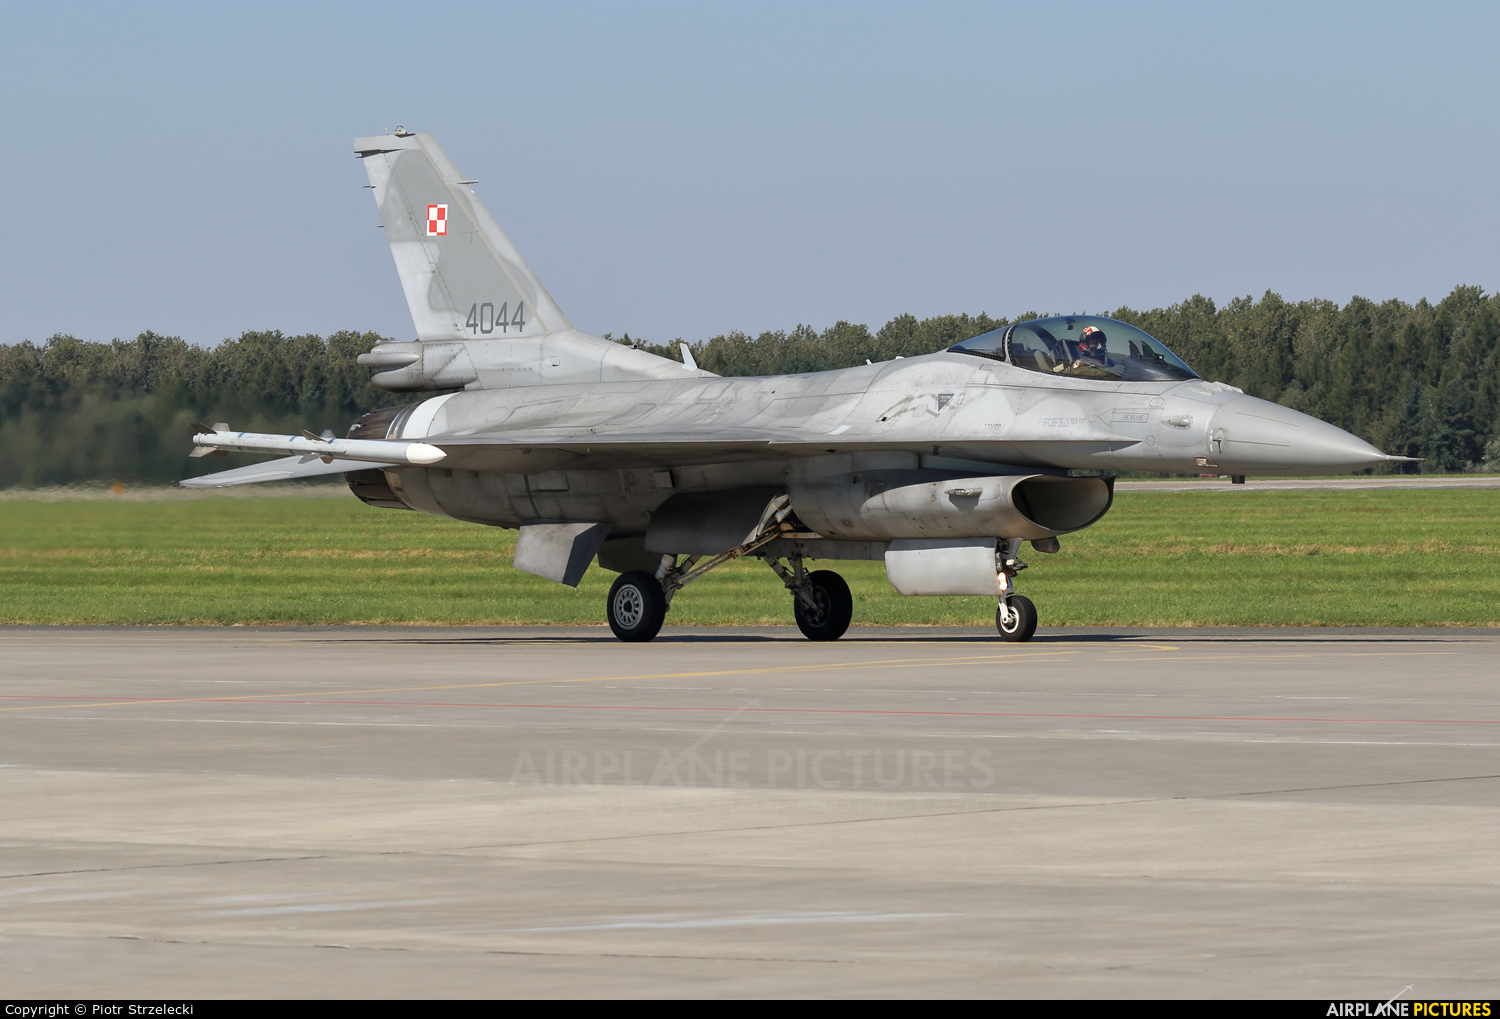 Poland - Air Force 4044 aircraft at Poznań - Krzesiny